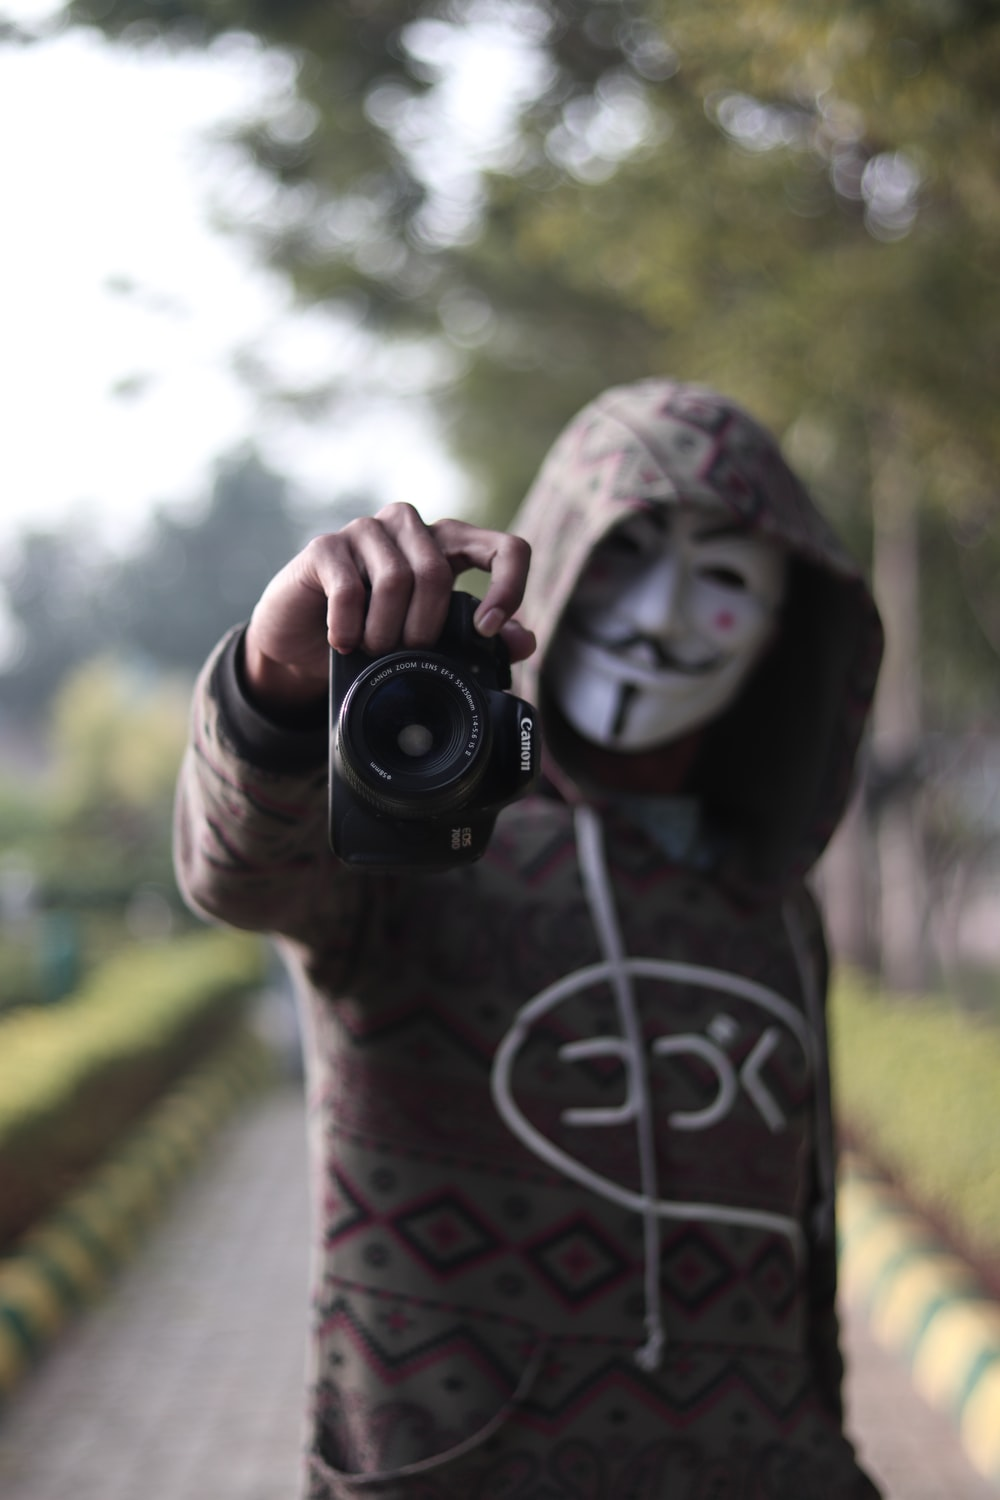 person standing and wearing guy fawkes mask holding DSLR camera